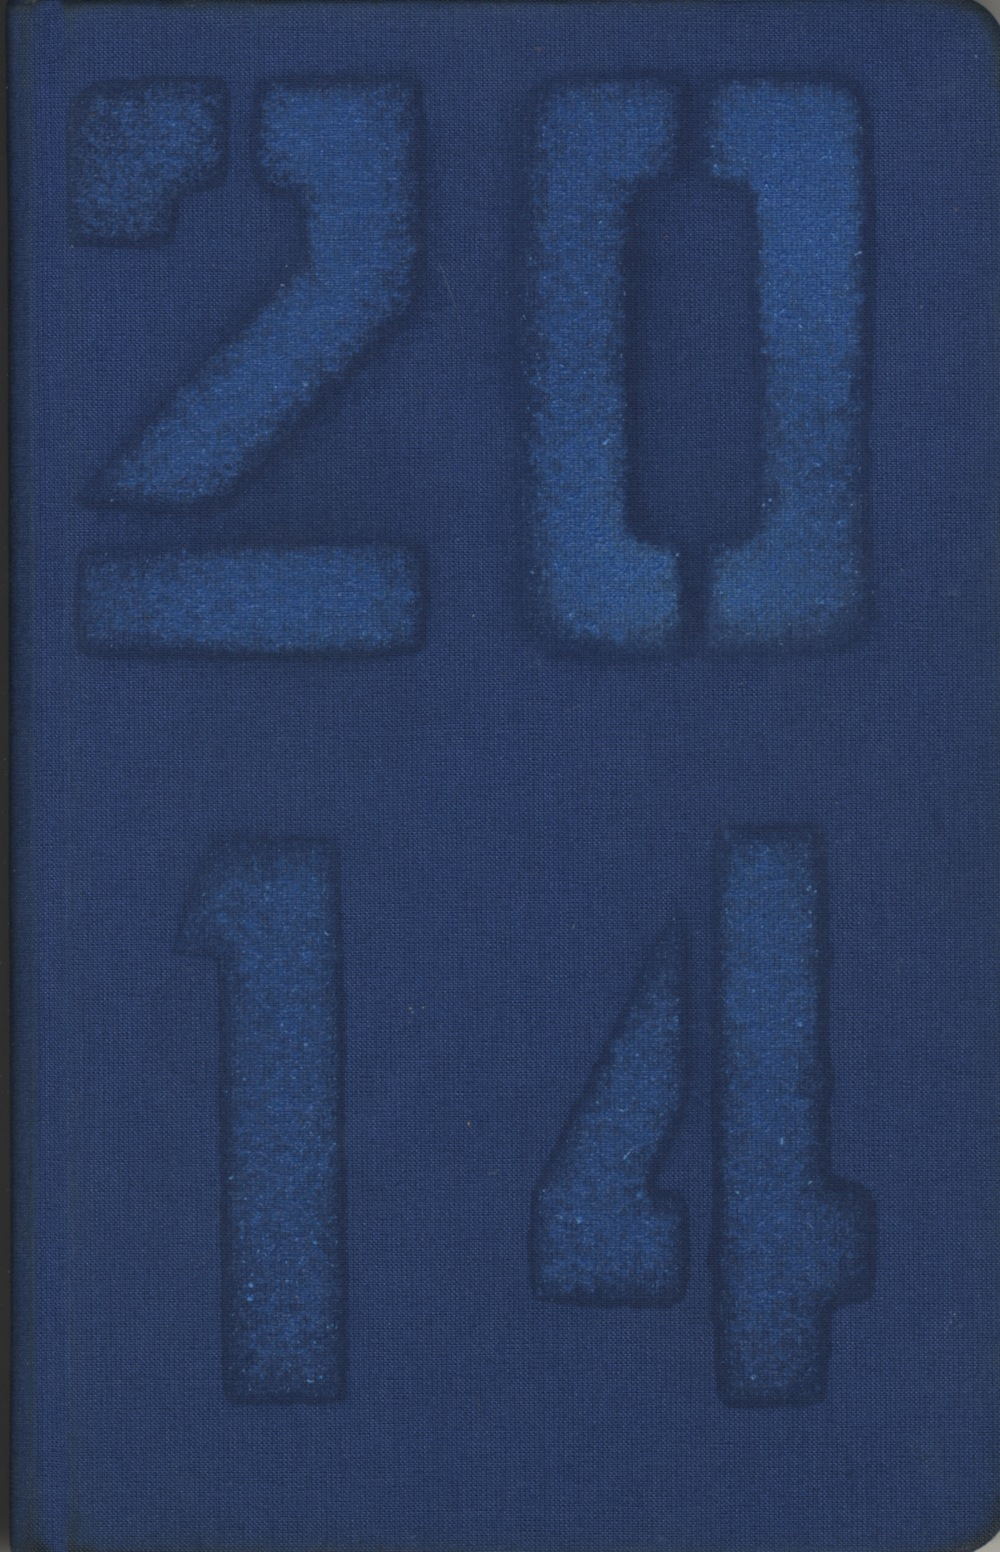 D.B. Dowd, calendar cover design, 2014. Sprayed blue-on-blue through stencils.